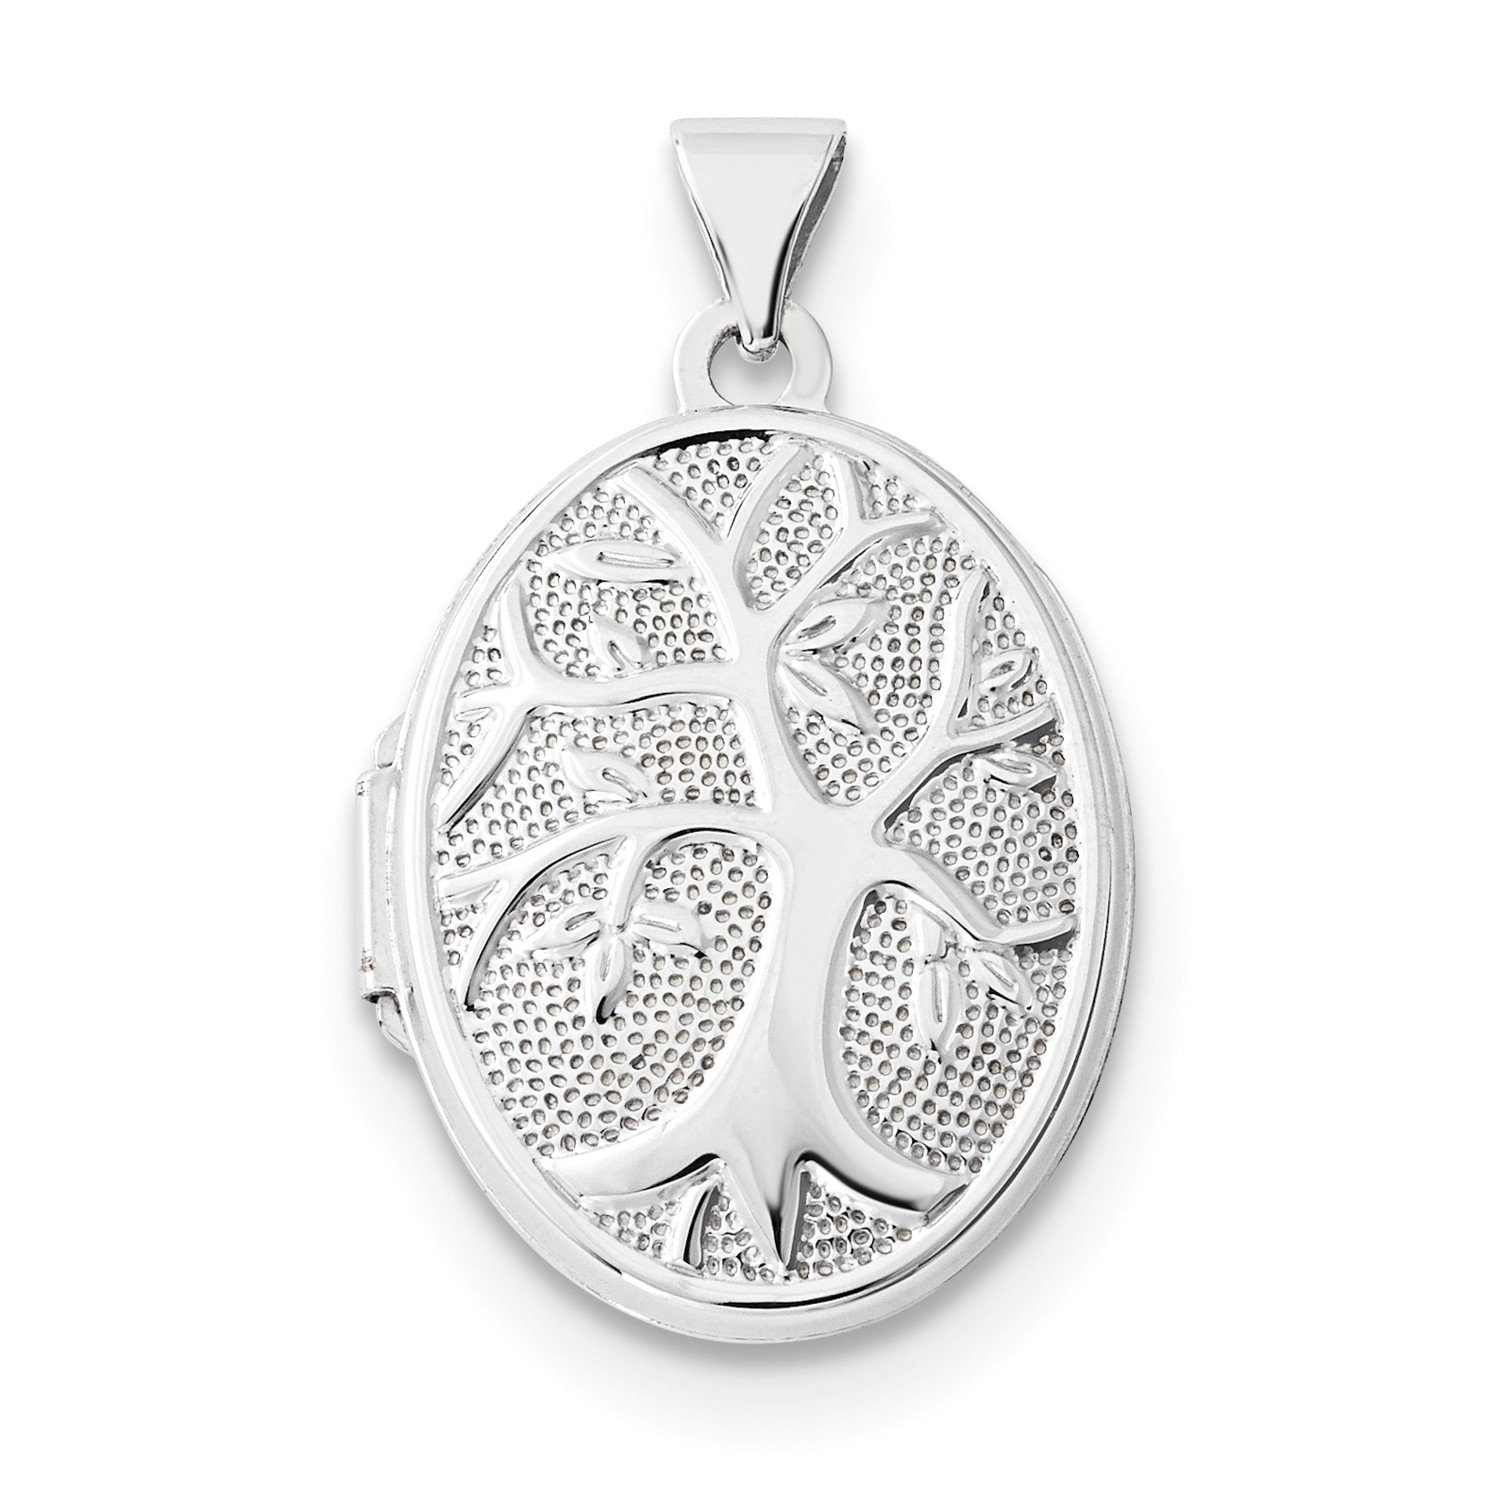 Roy Rose Jewelry 14K White Gold 21x16mm Oval Tree Locket by Roy Rose Jewelry